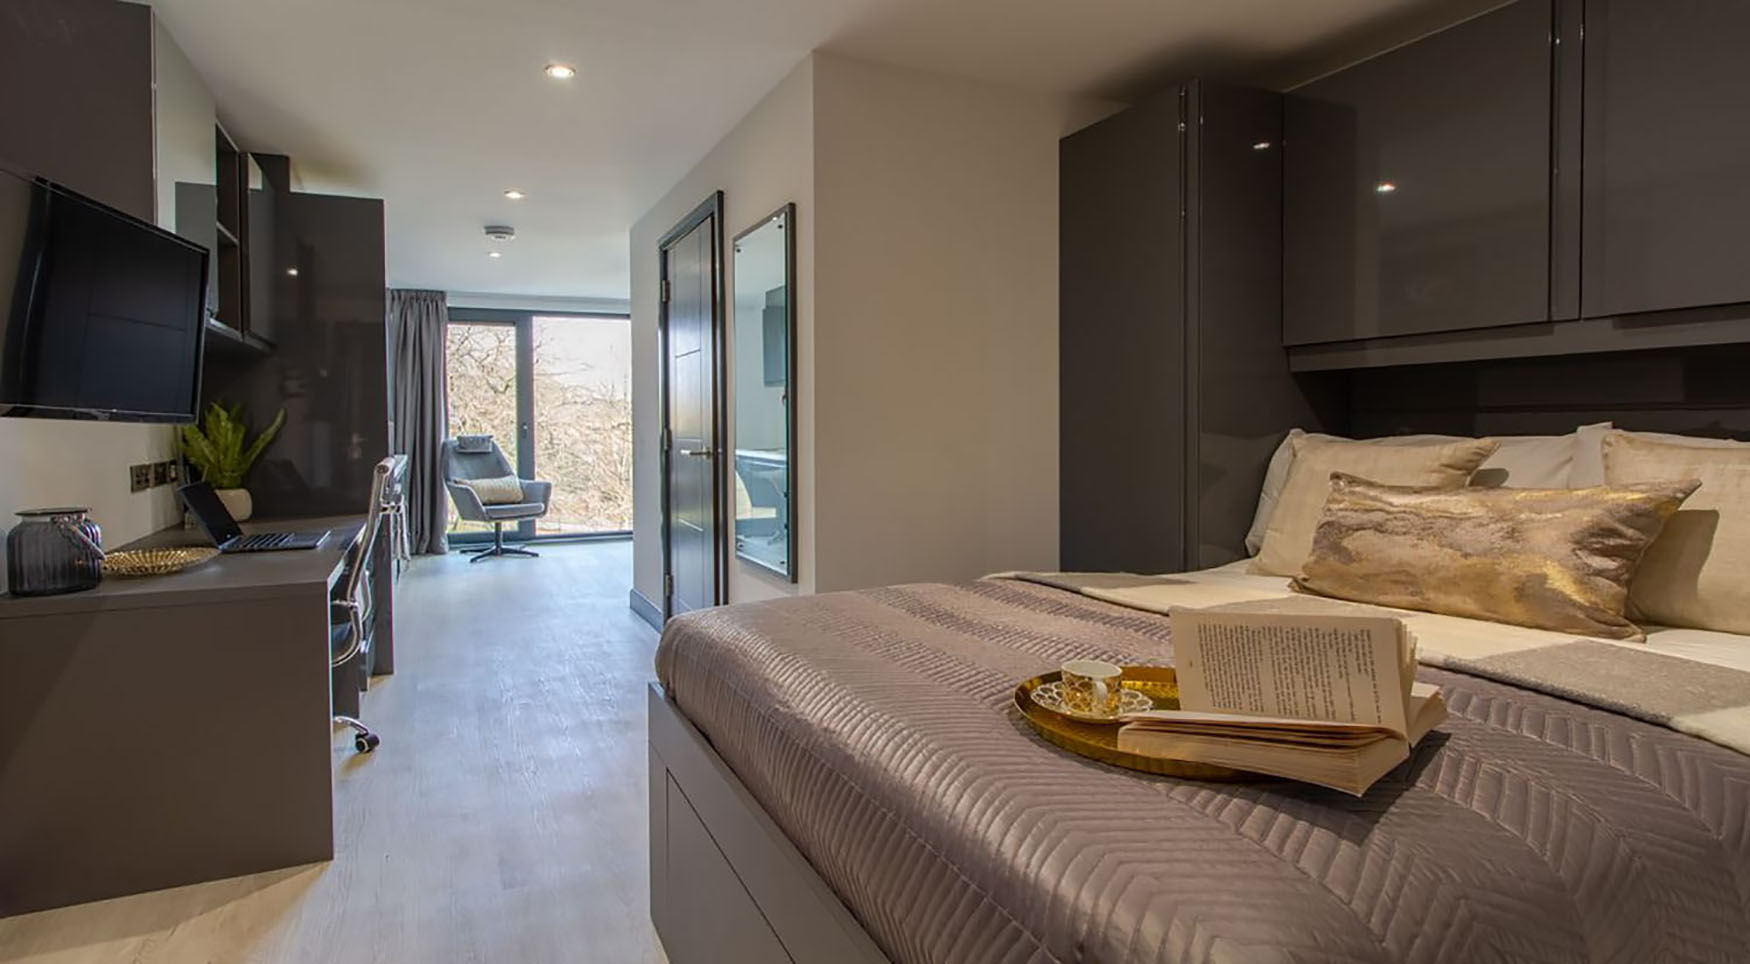 Breakfast in bed atThe Residence Coventry, Centre, Newmarket - Citybase Apartments